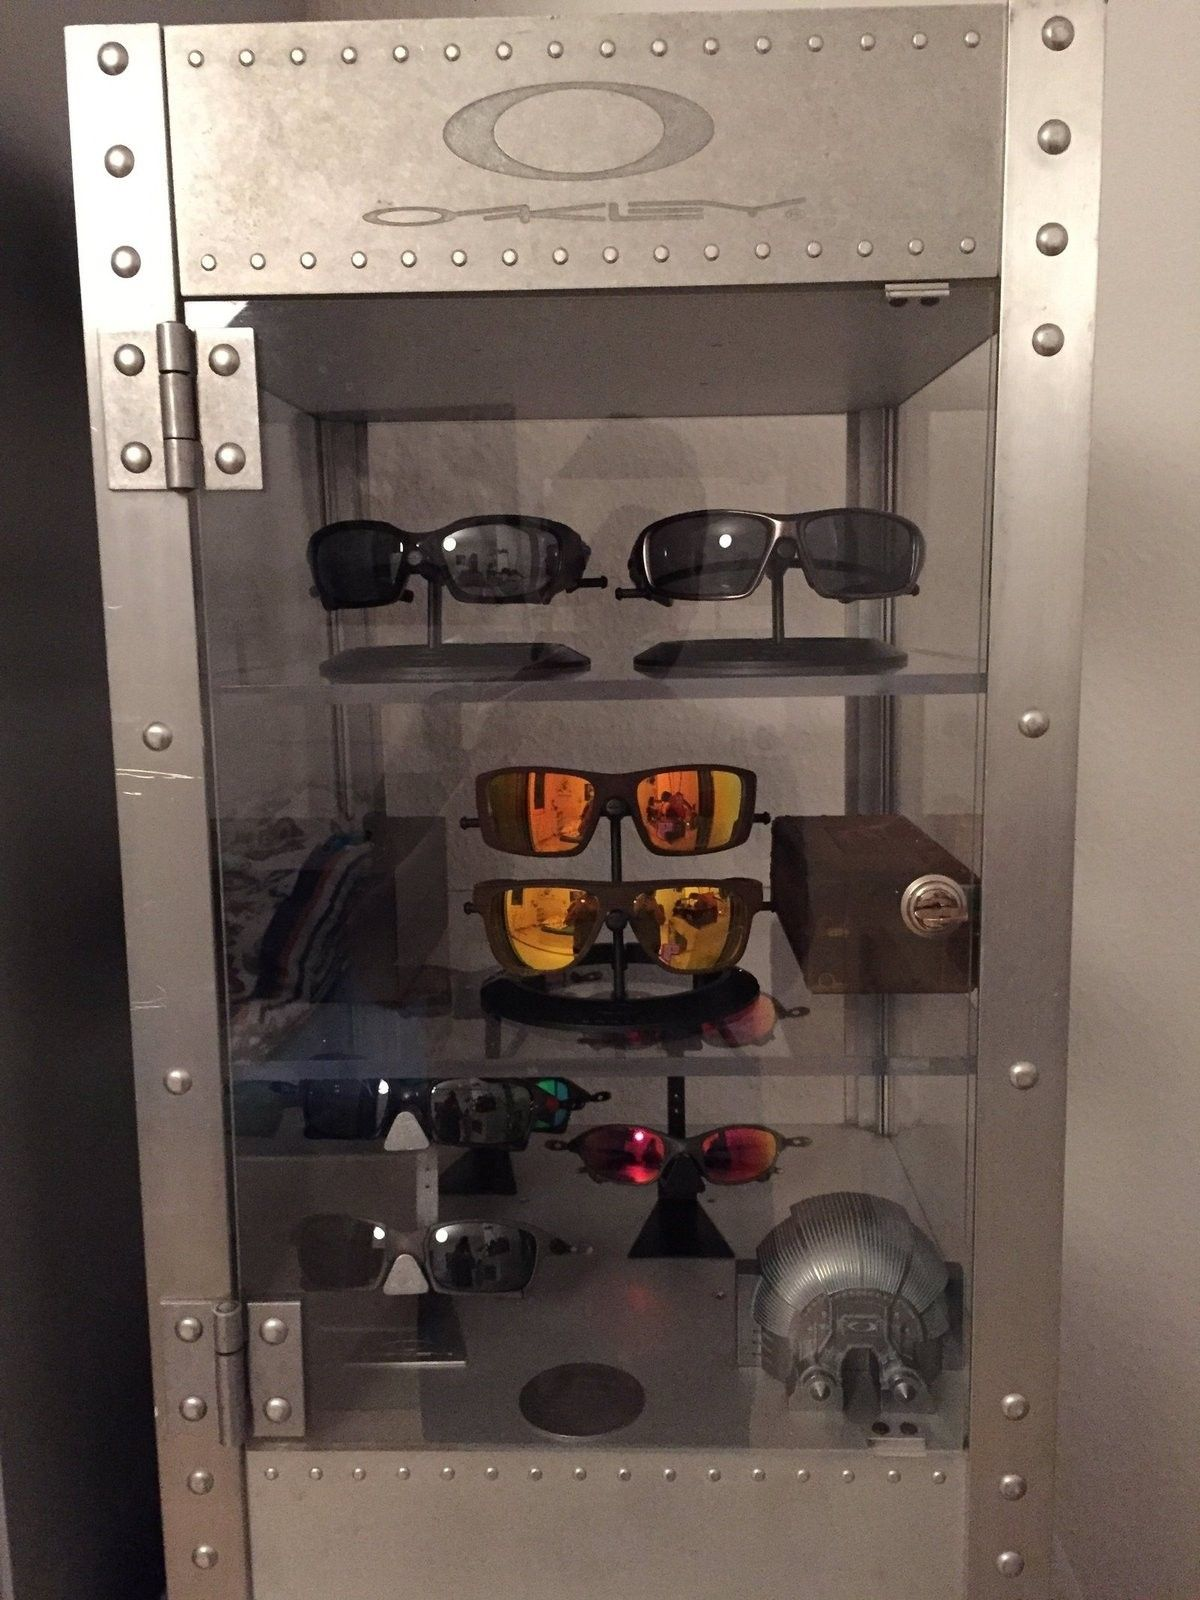 Finally got another Counter Top/Display Case - image.jpg